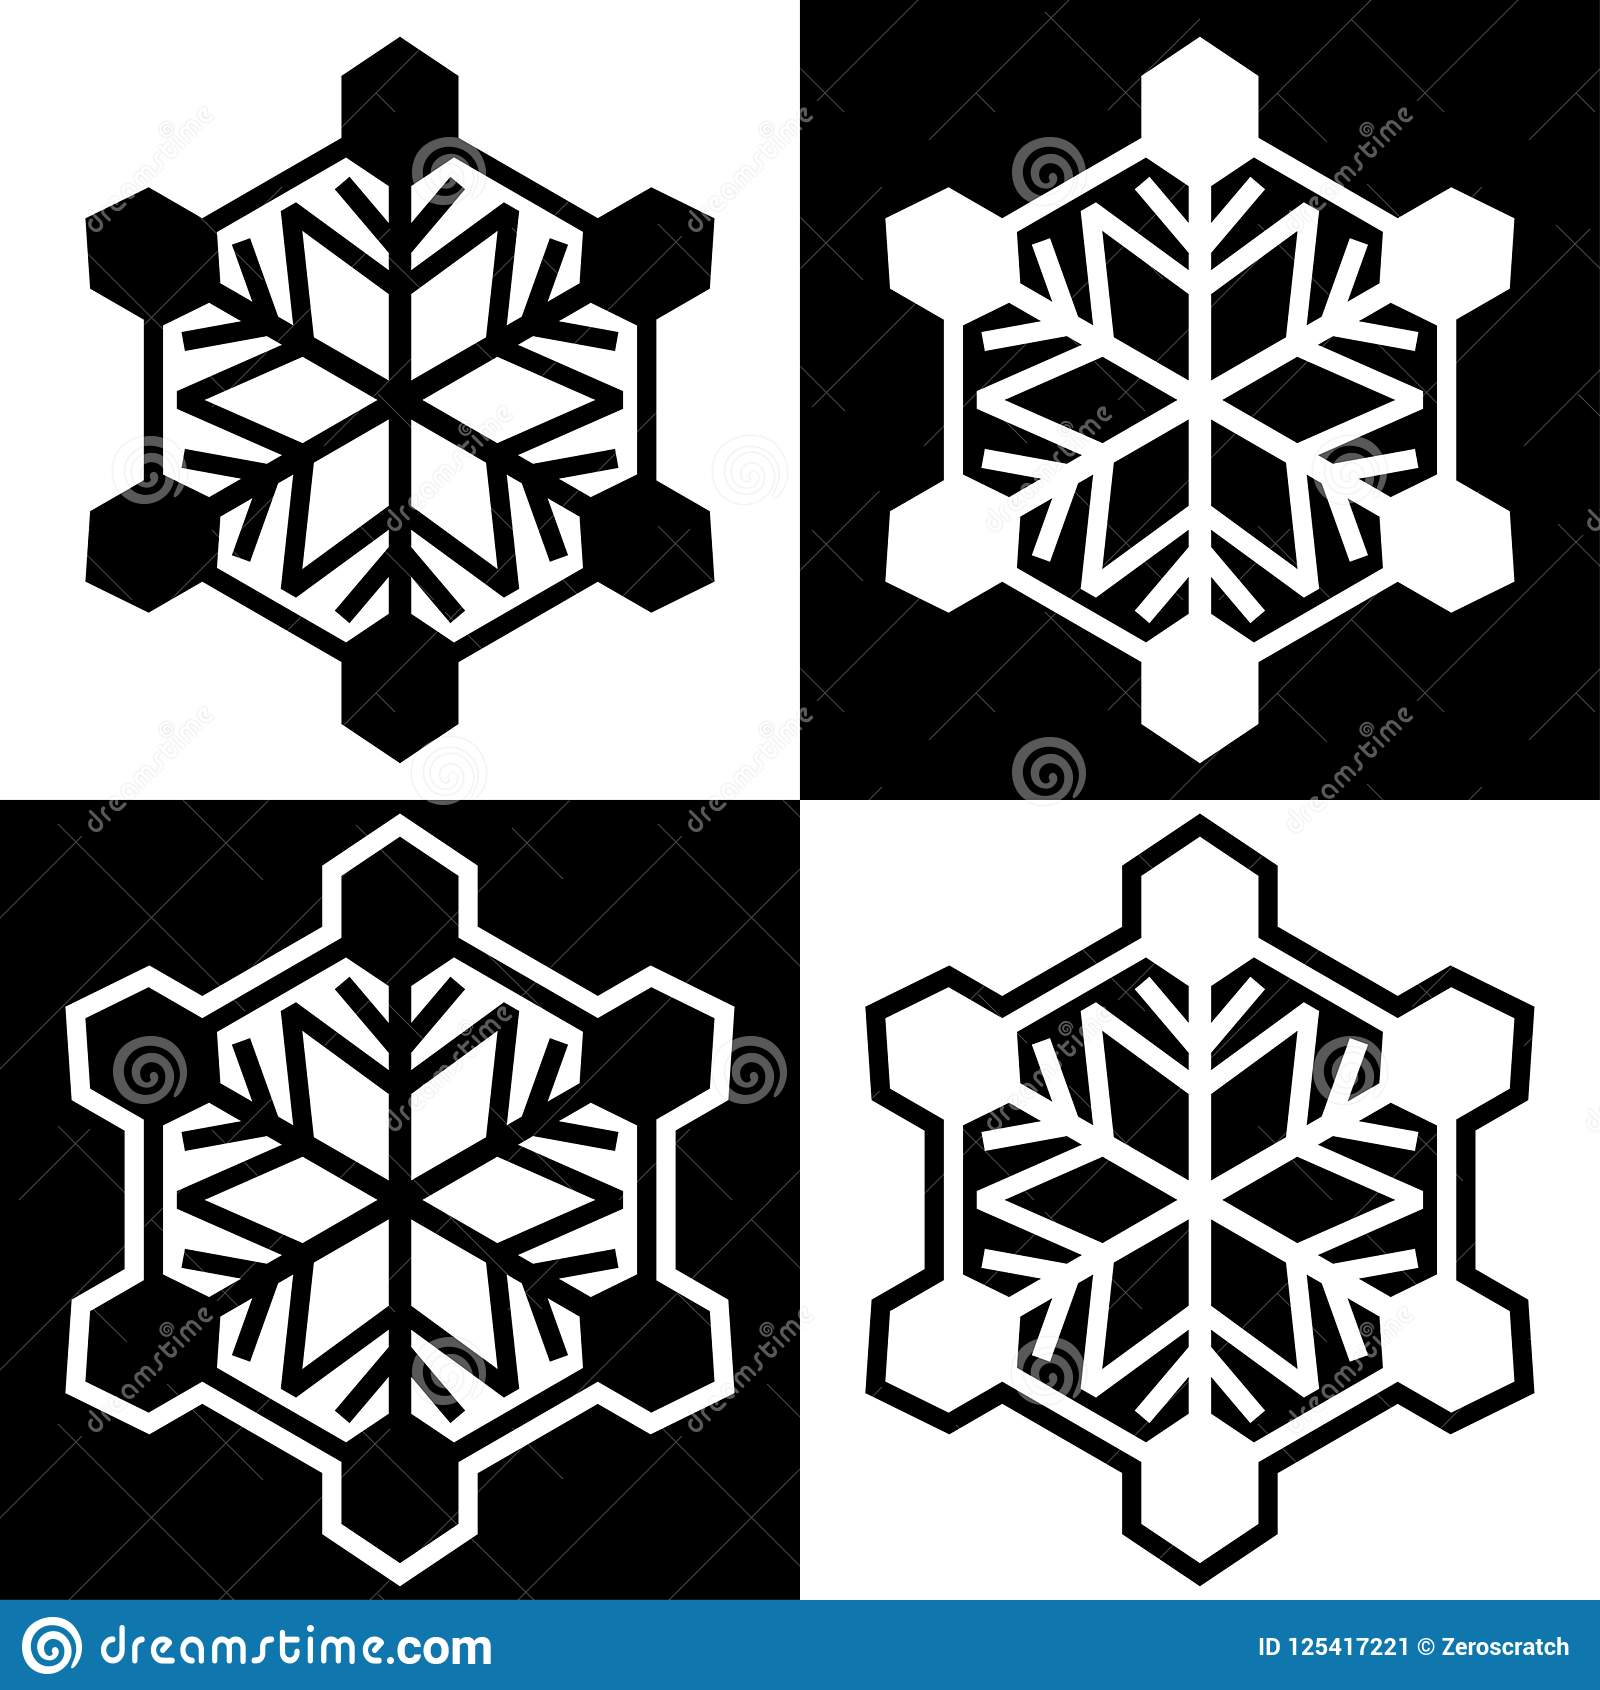 Snowflake Symbols Icons Signs Logos Simple Black And White